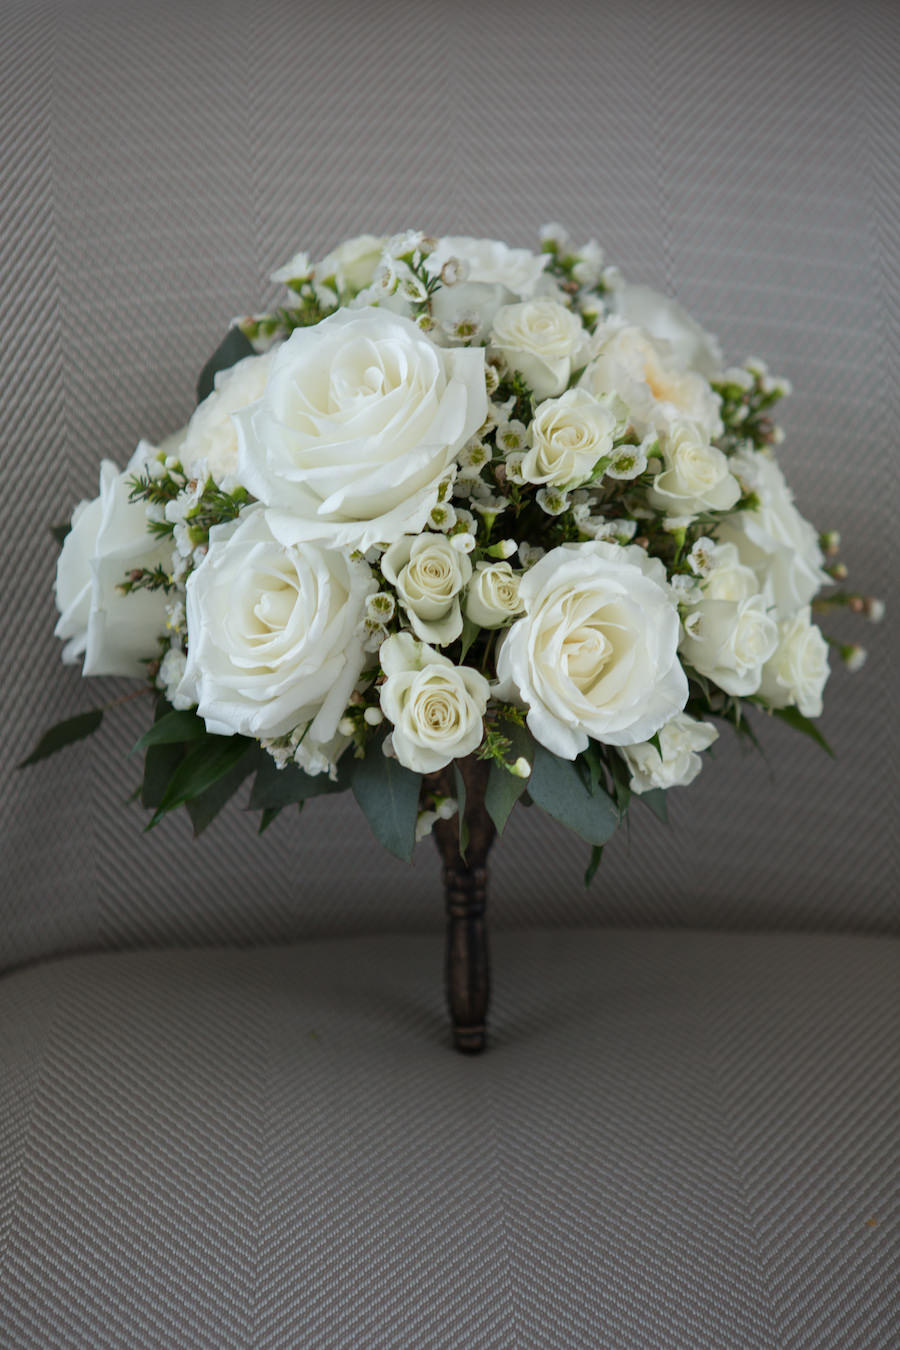 Classic White Rose and Greenery Wedding Bouquet   Tampa Bay Wedding Florist Northside Florist